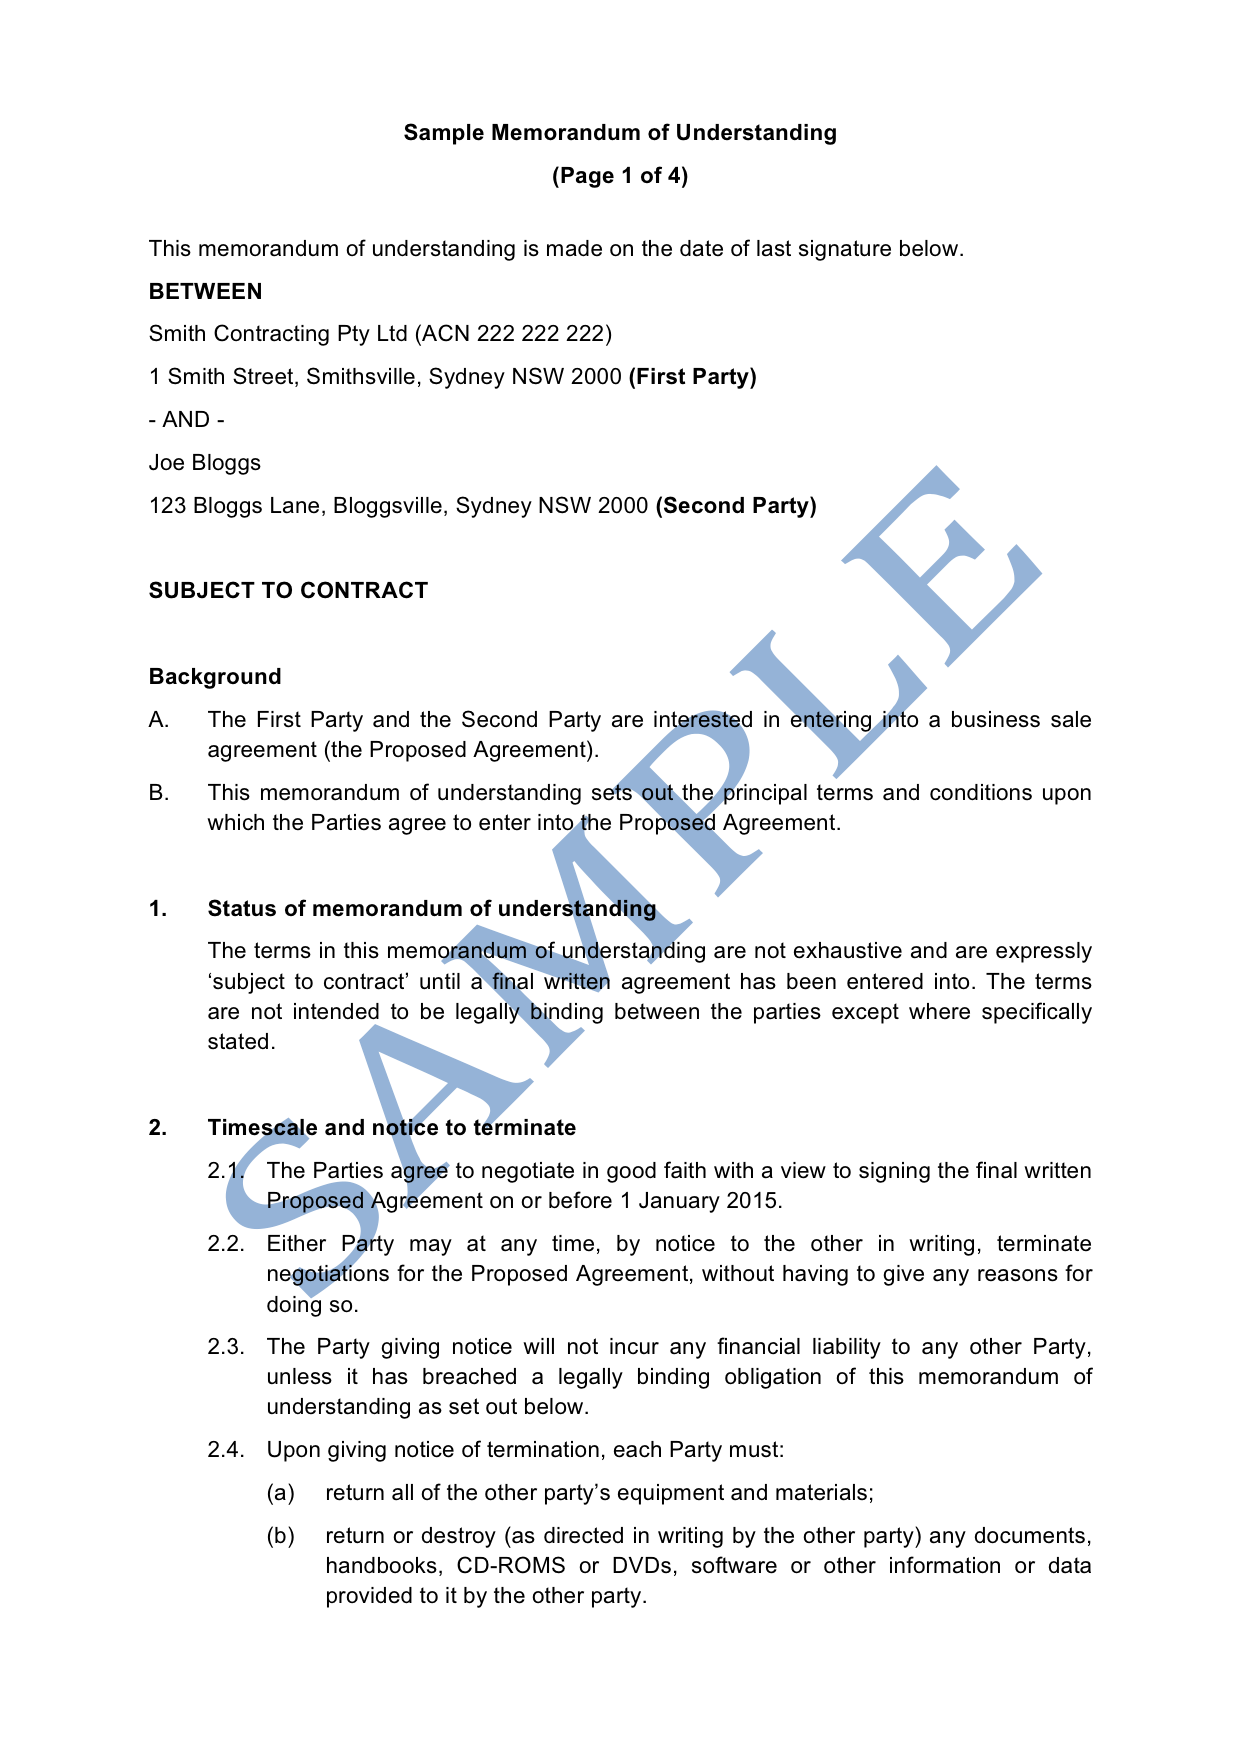 Memorandum Of Understanding Template | Memorandum Of Understanding Sample Lawpath